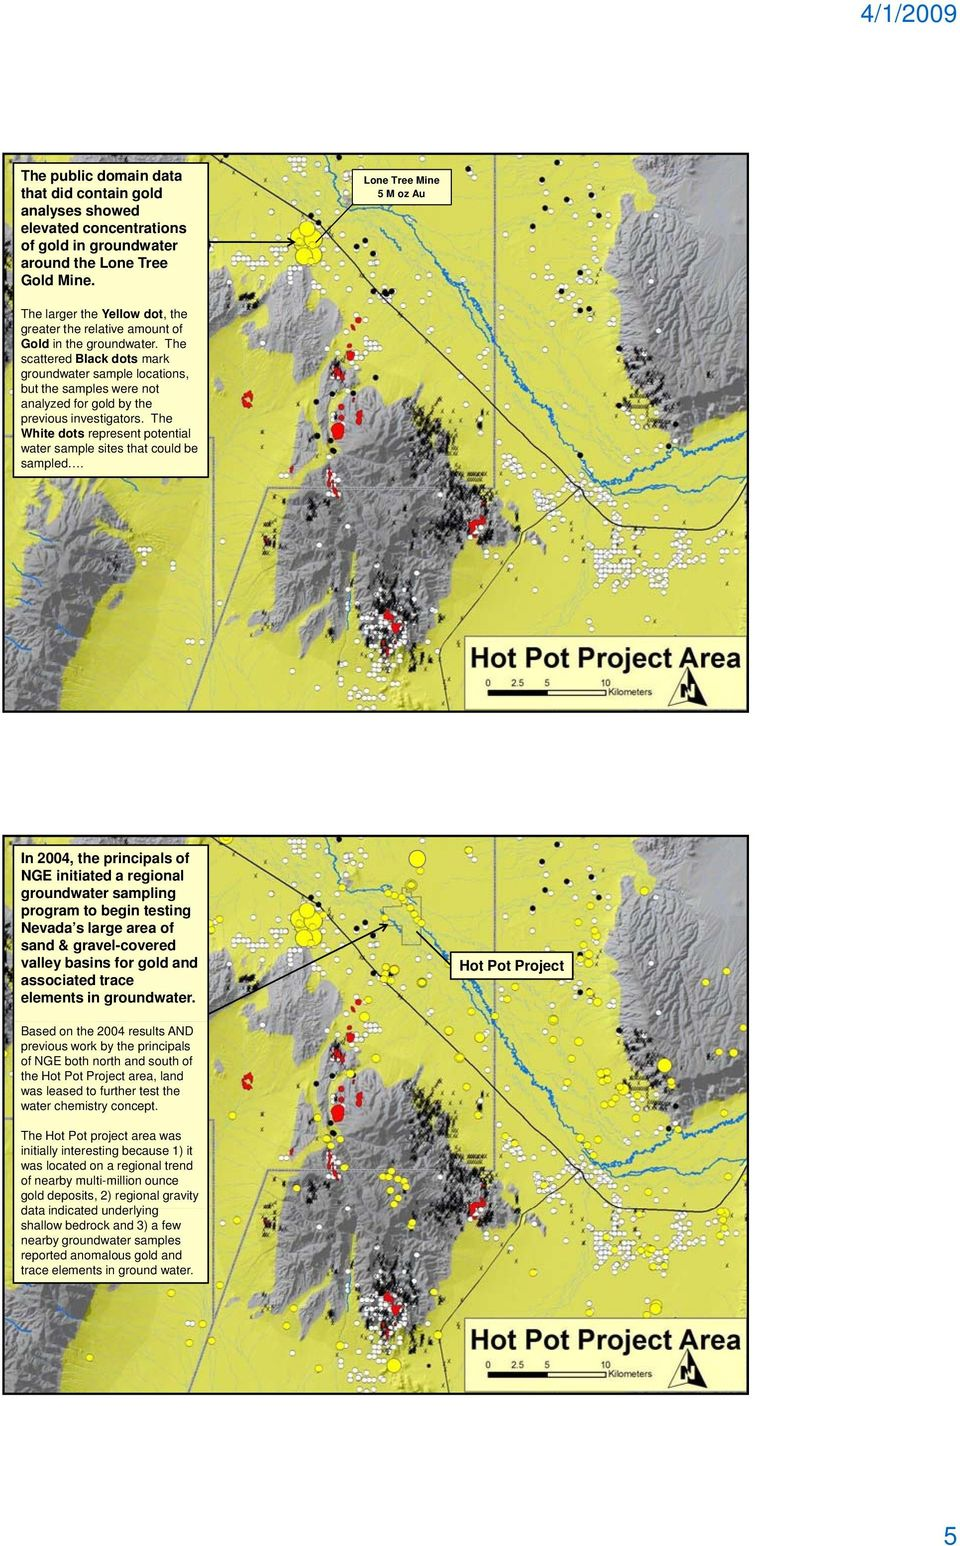 The scattered Black dots mark groundwater sample locations, but the samples were not analyzed for gold by the previous investigators.